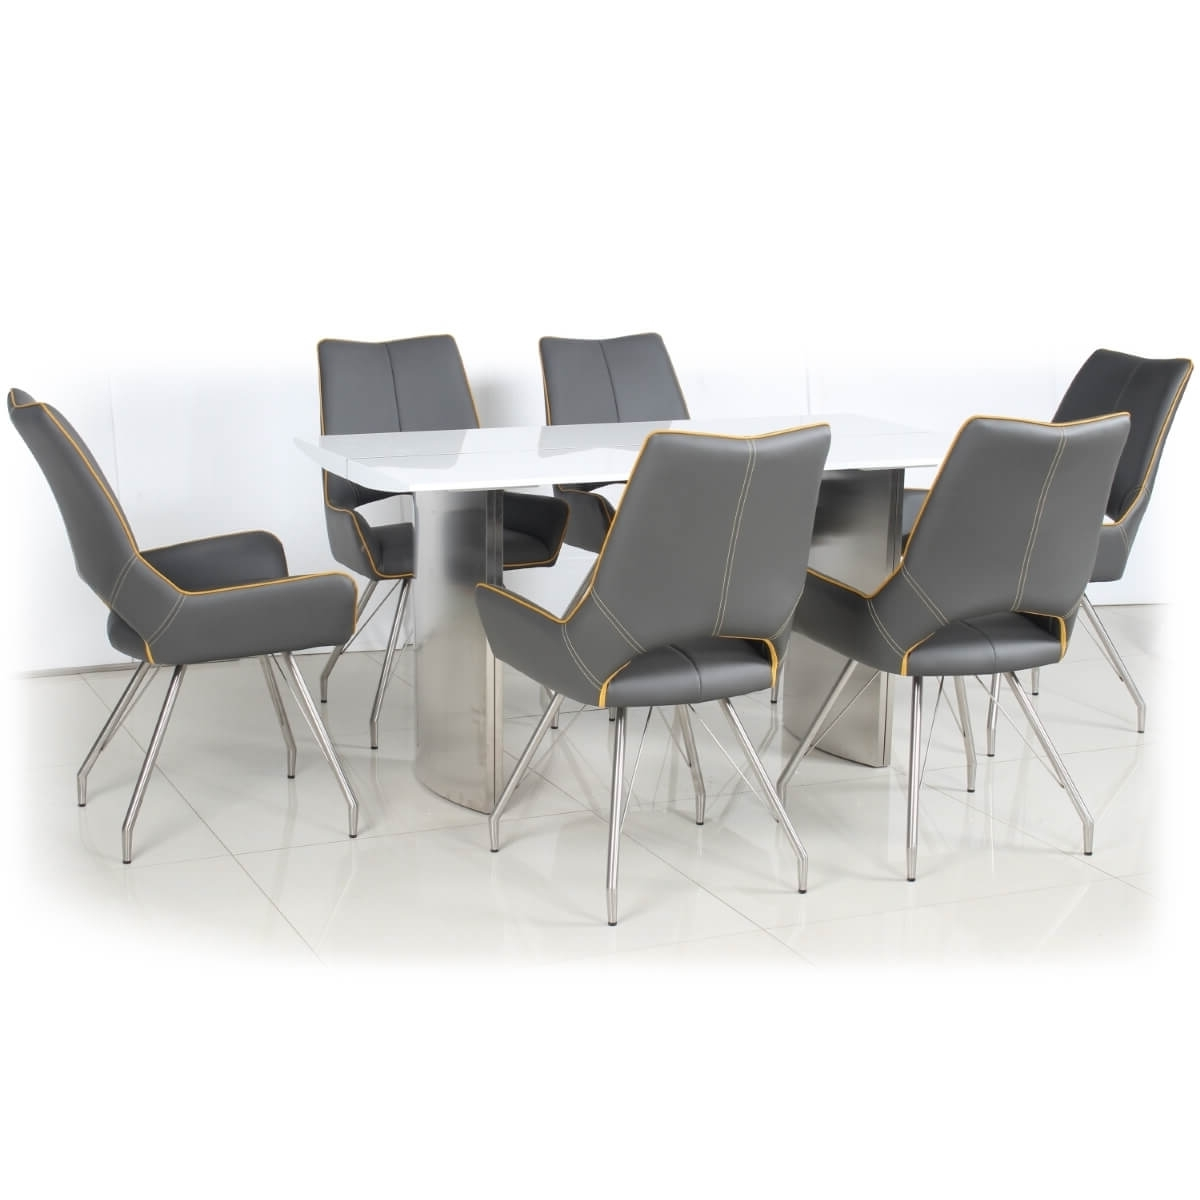 Most Recently Released Black Gloss Dining Sets Inside Dining Set – White High Gloss Dining Table And 6 Grey Dining Chairs (Gallery 23 of 25)